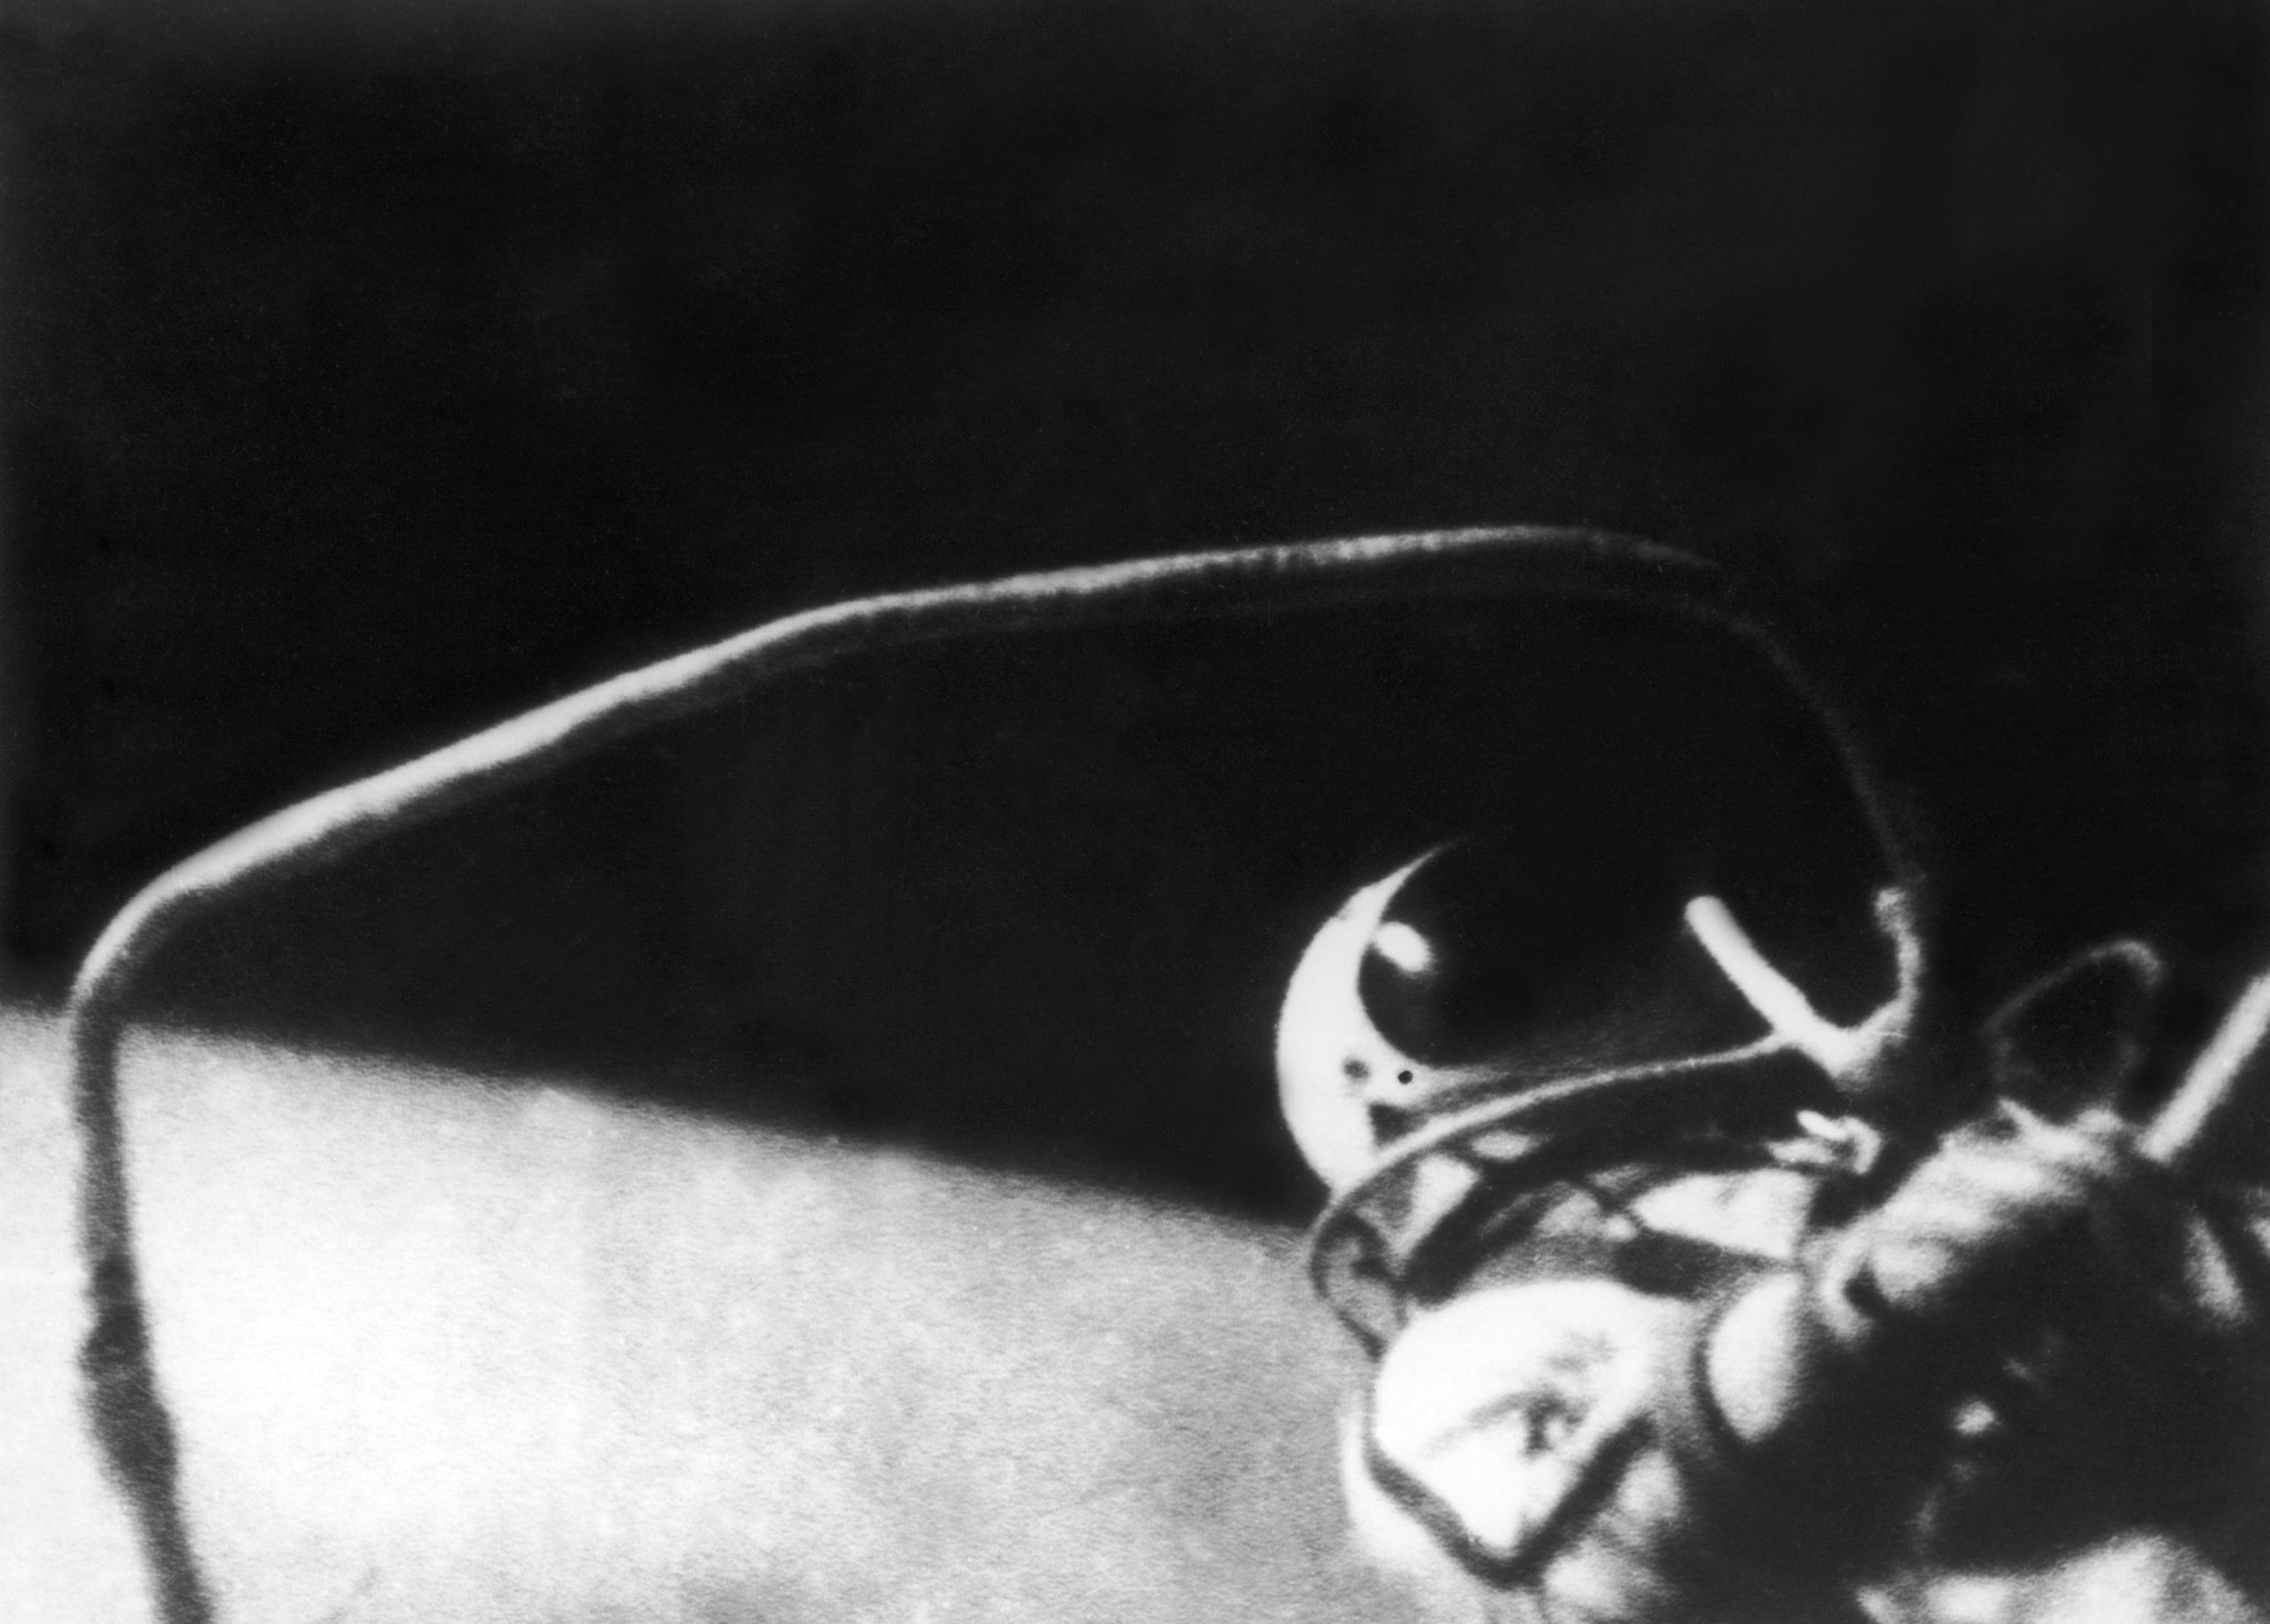 The astonaut Alexei Leonov floating in space during his first spacewalk on March 18, 1965.